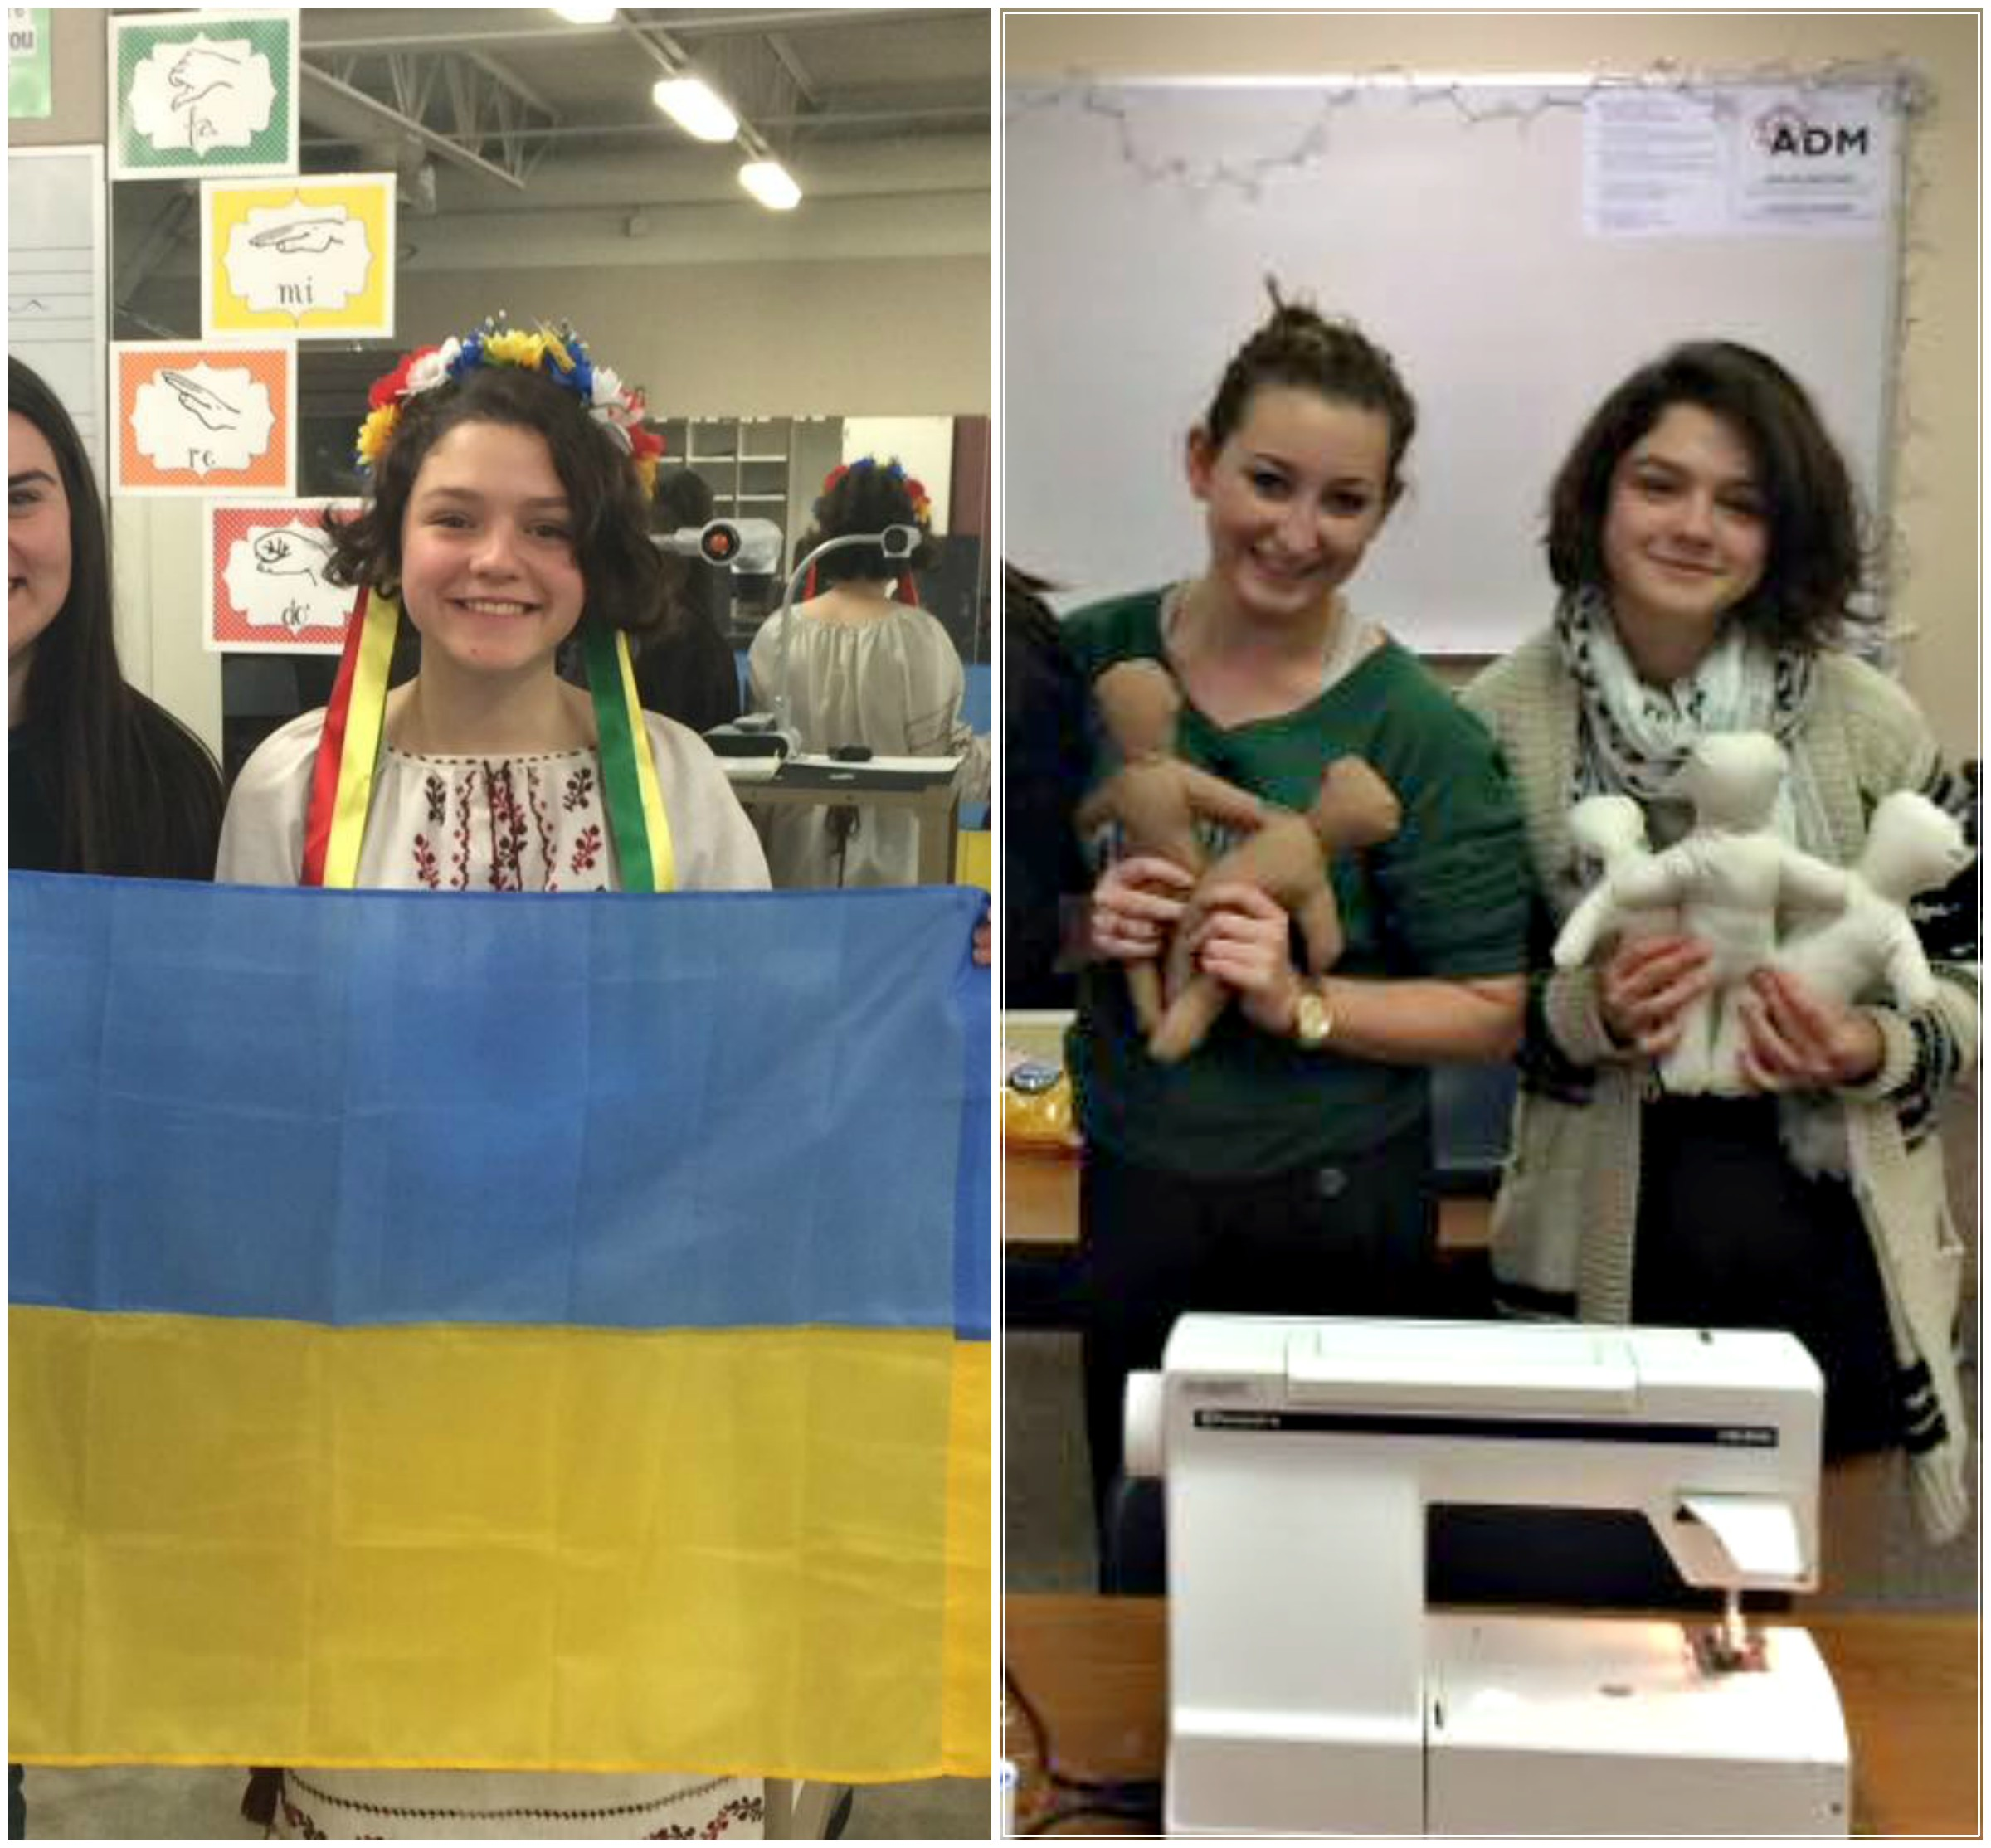 Left: Anna in her traditional wear, holding her country's flag during International Education Week. Right: Anna with FCCLA club members making dolls to raise money for Children's Blank Hospital.